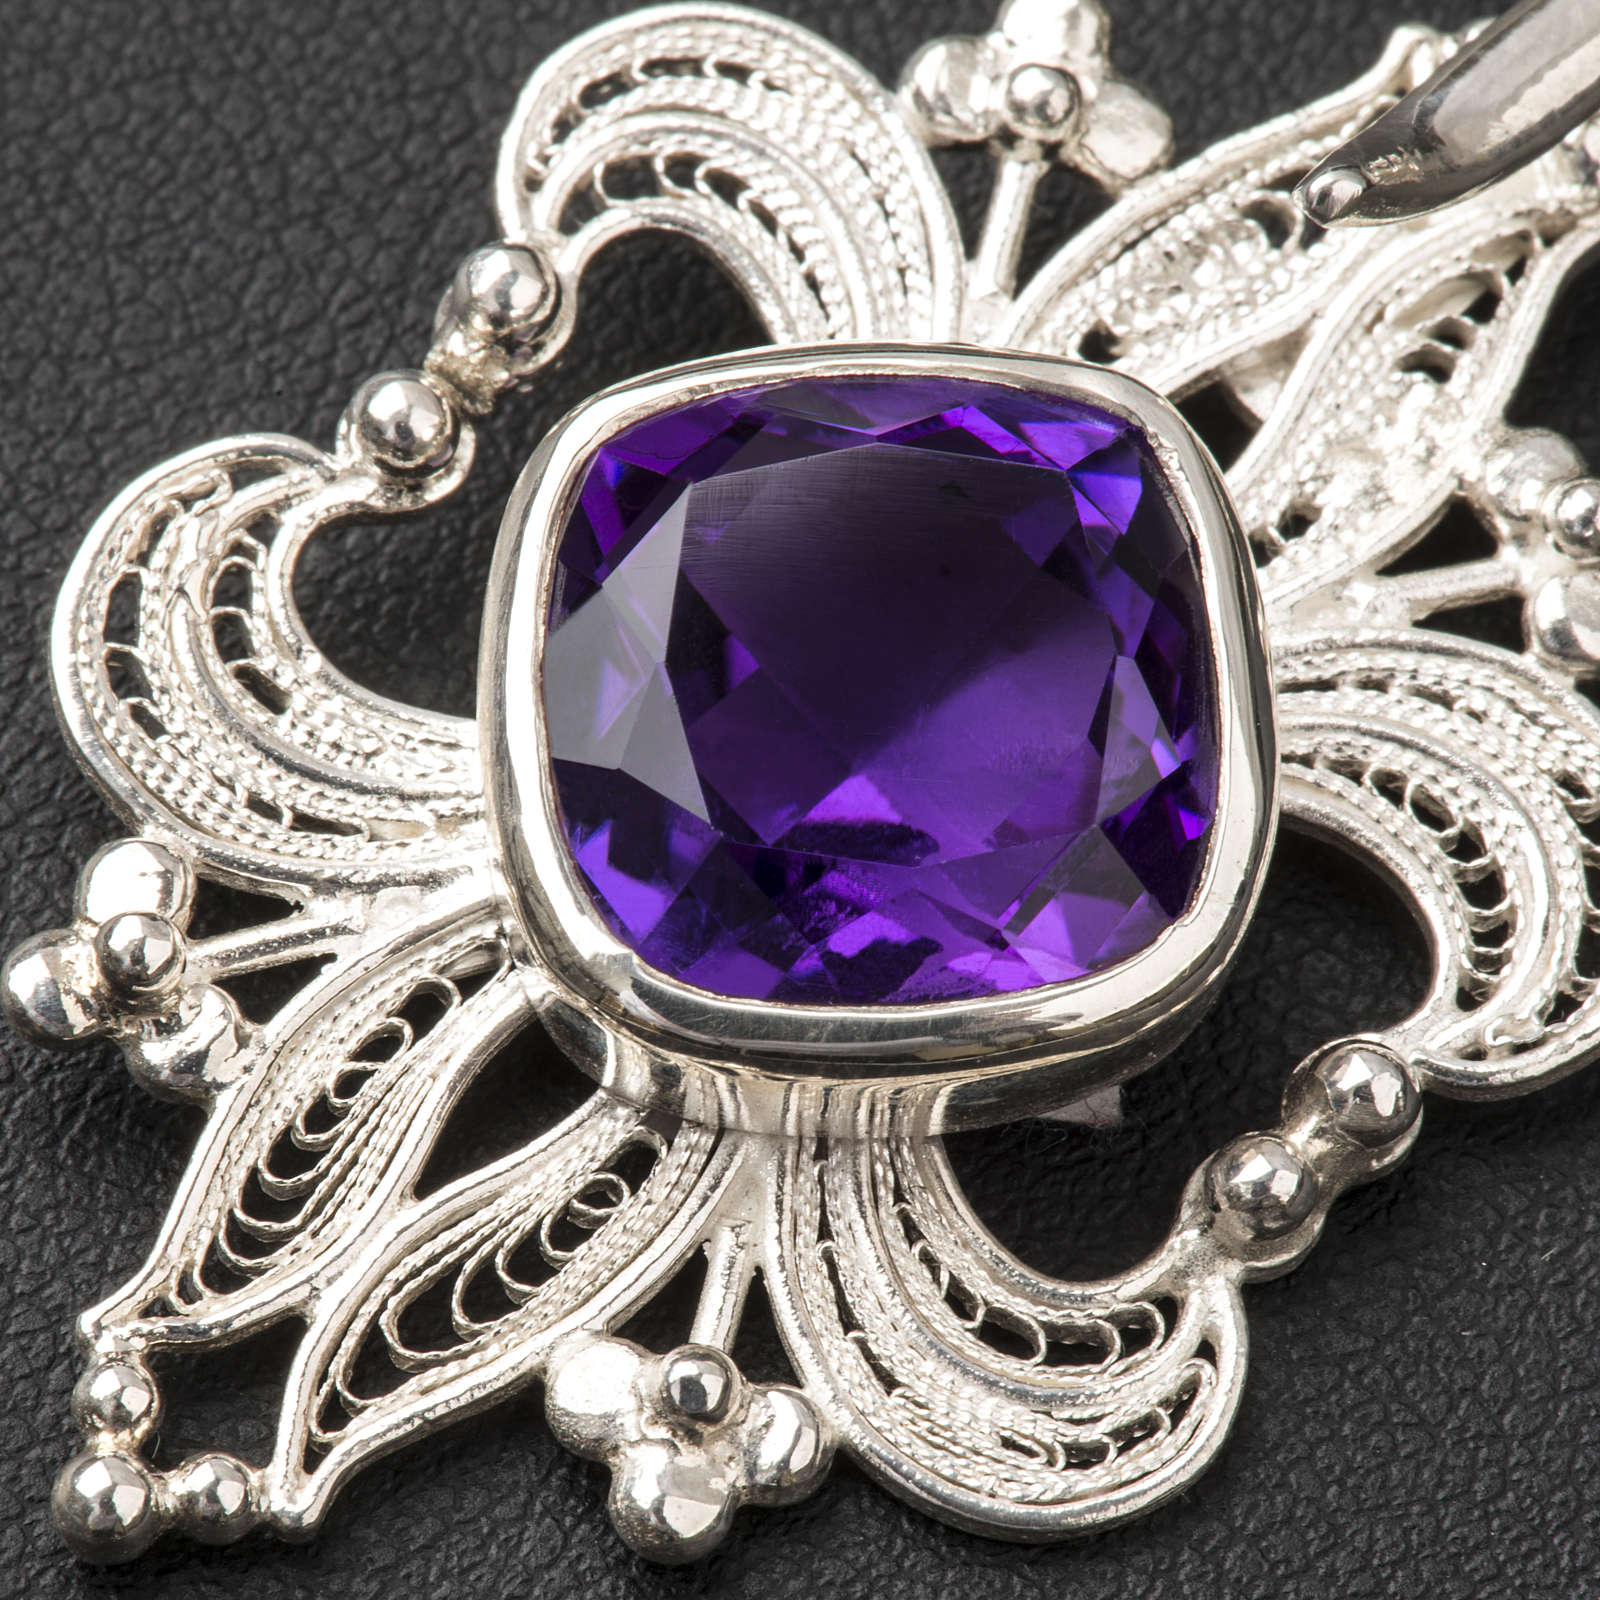 Cope Clasp in silver 800 filigree with Amethyst stone 4